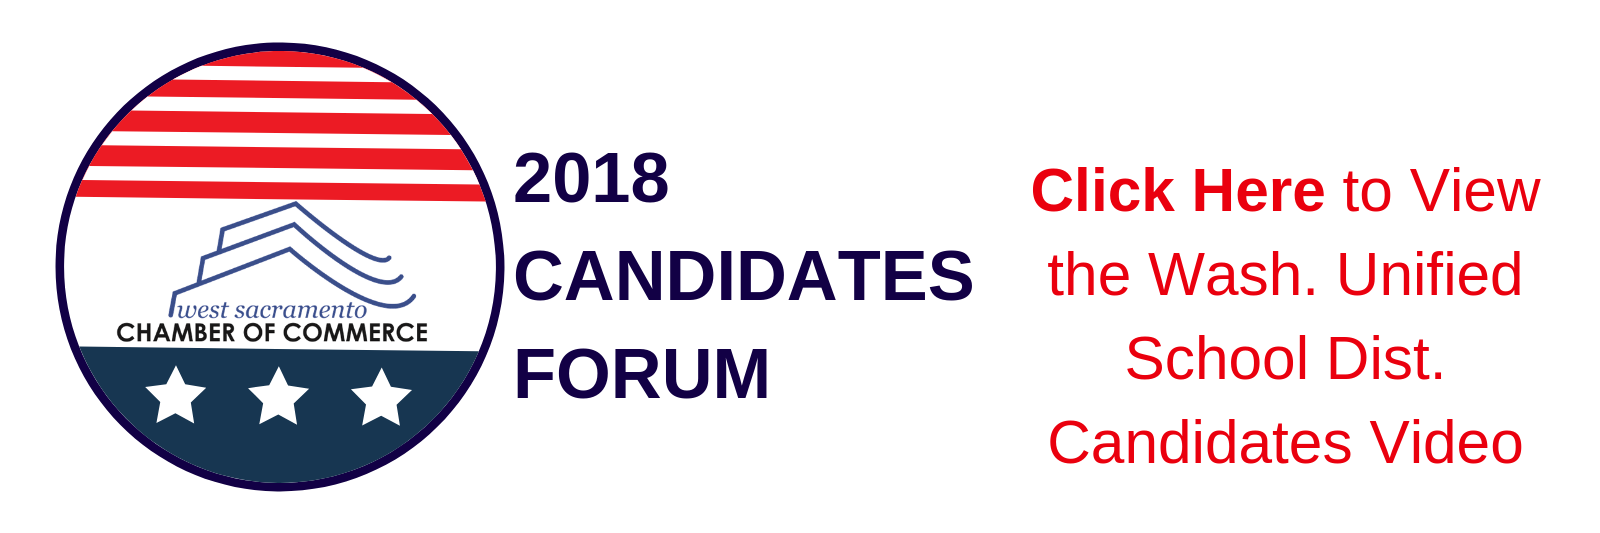 Candidates-Forum-WUSD-Candidates-Video-Image.png